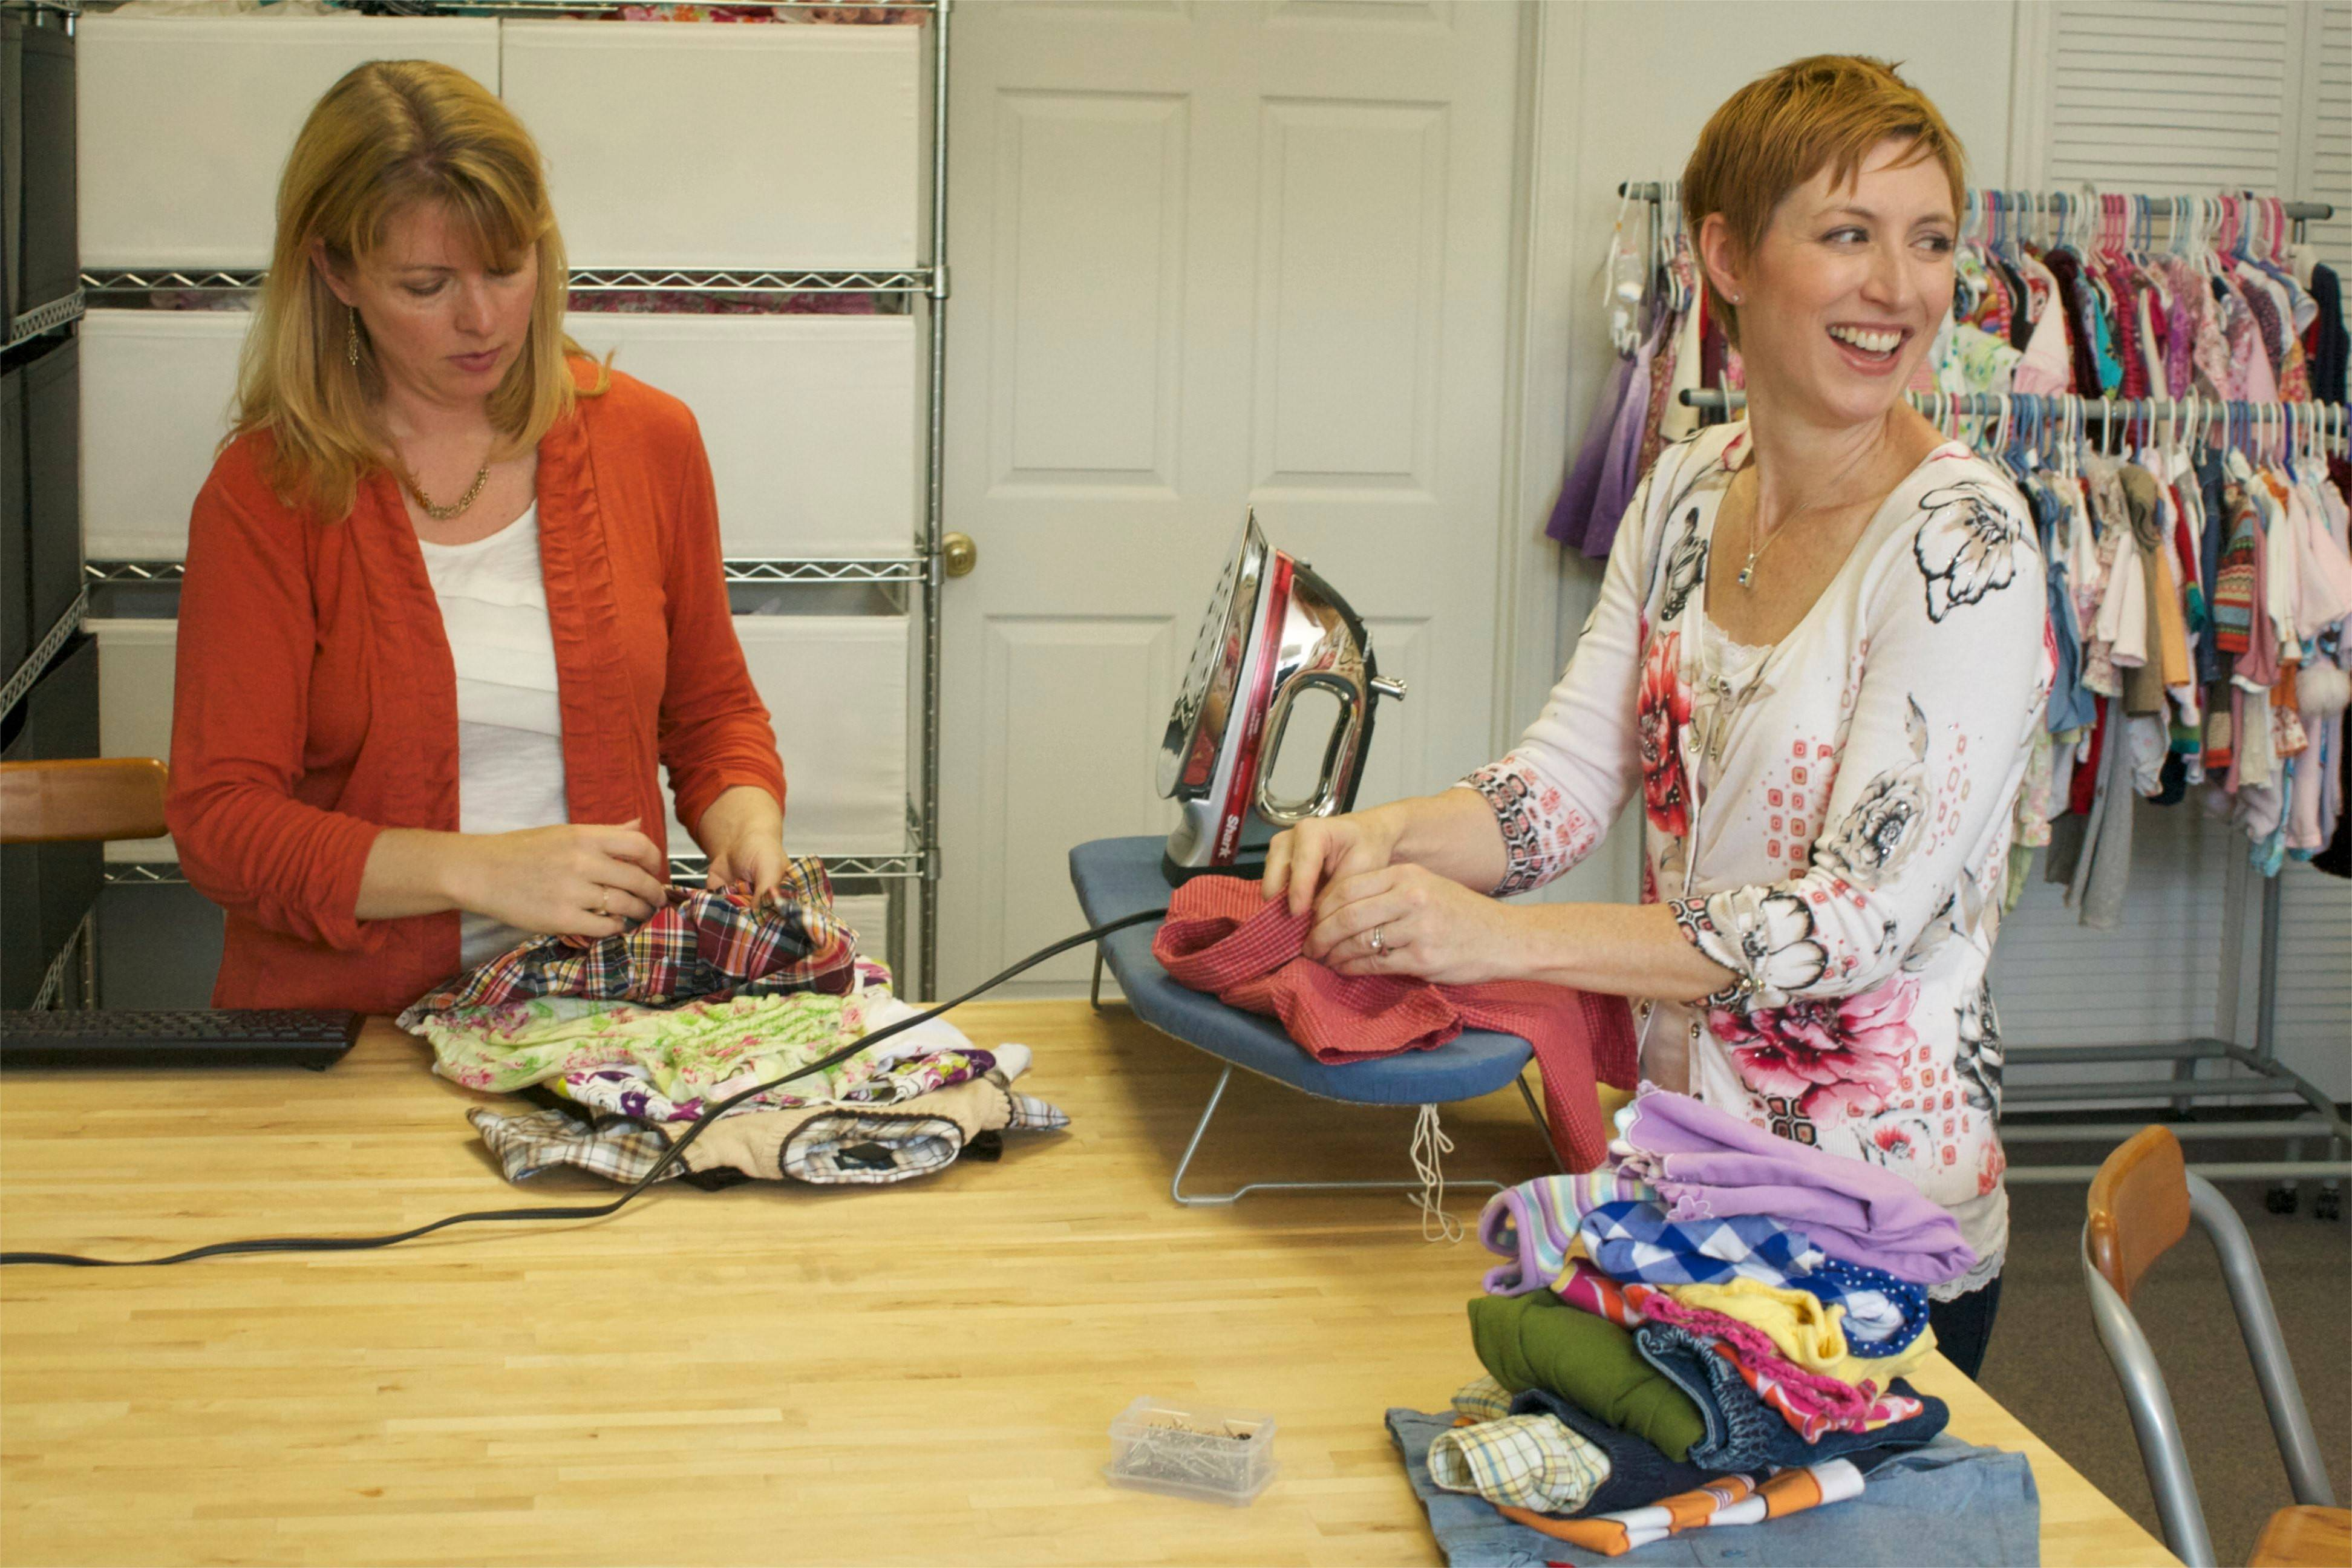 Sisters Sandra Pinter, left, and Sharon Schneider, co-founders of e-commerce site MoxieJean.com, prepare some of the used clothing for resale.